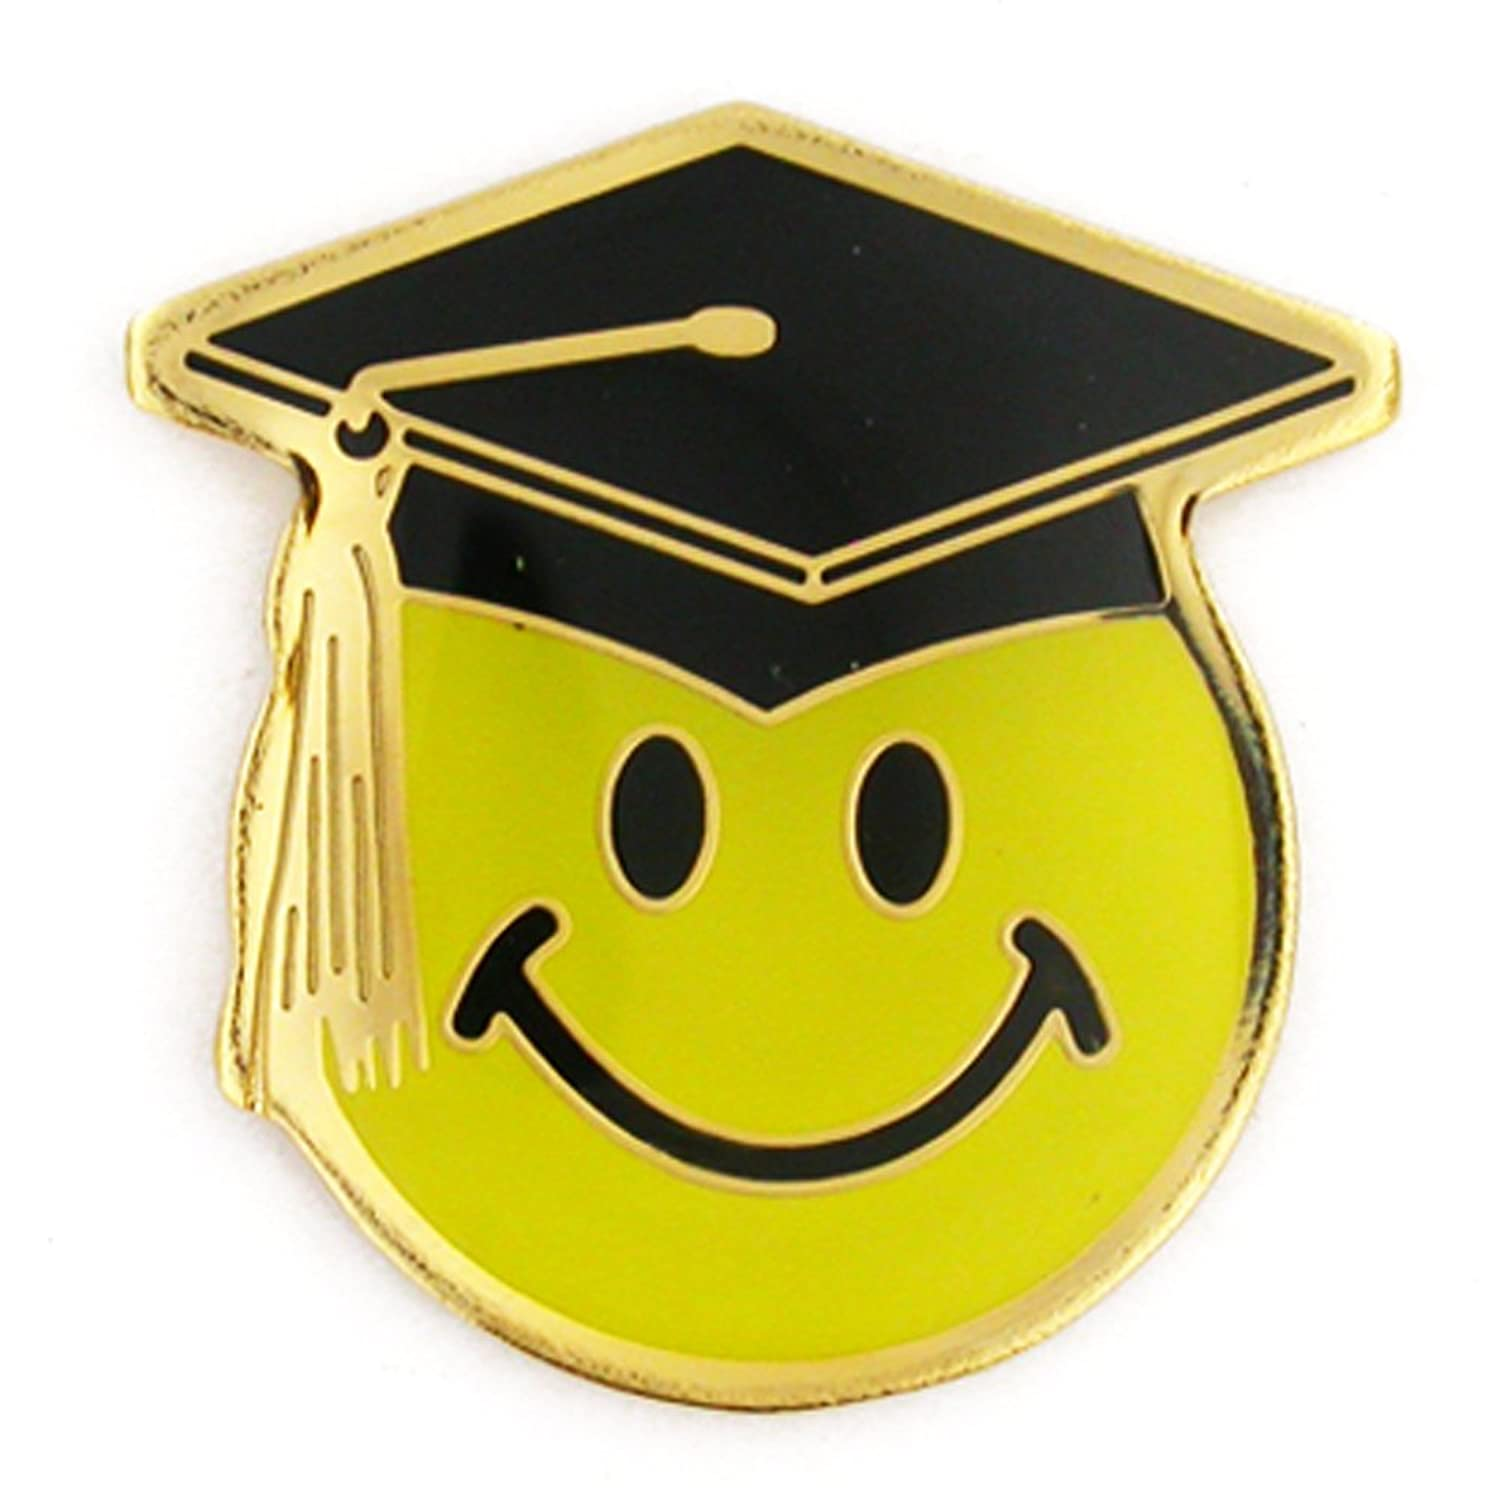 PinMart's Smiley Face with Graduation Cap School Lapel Pin for sale